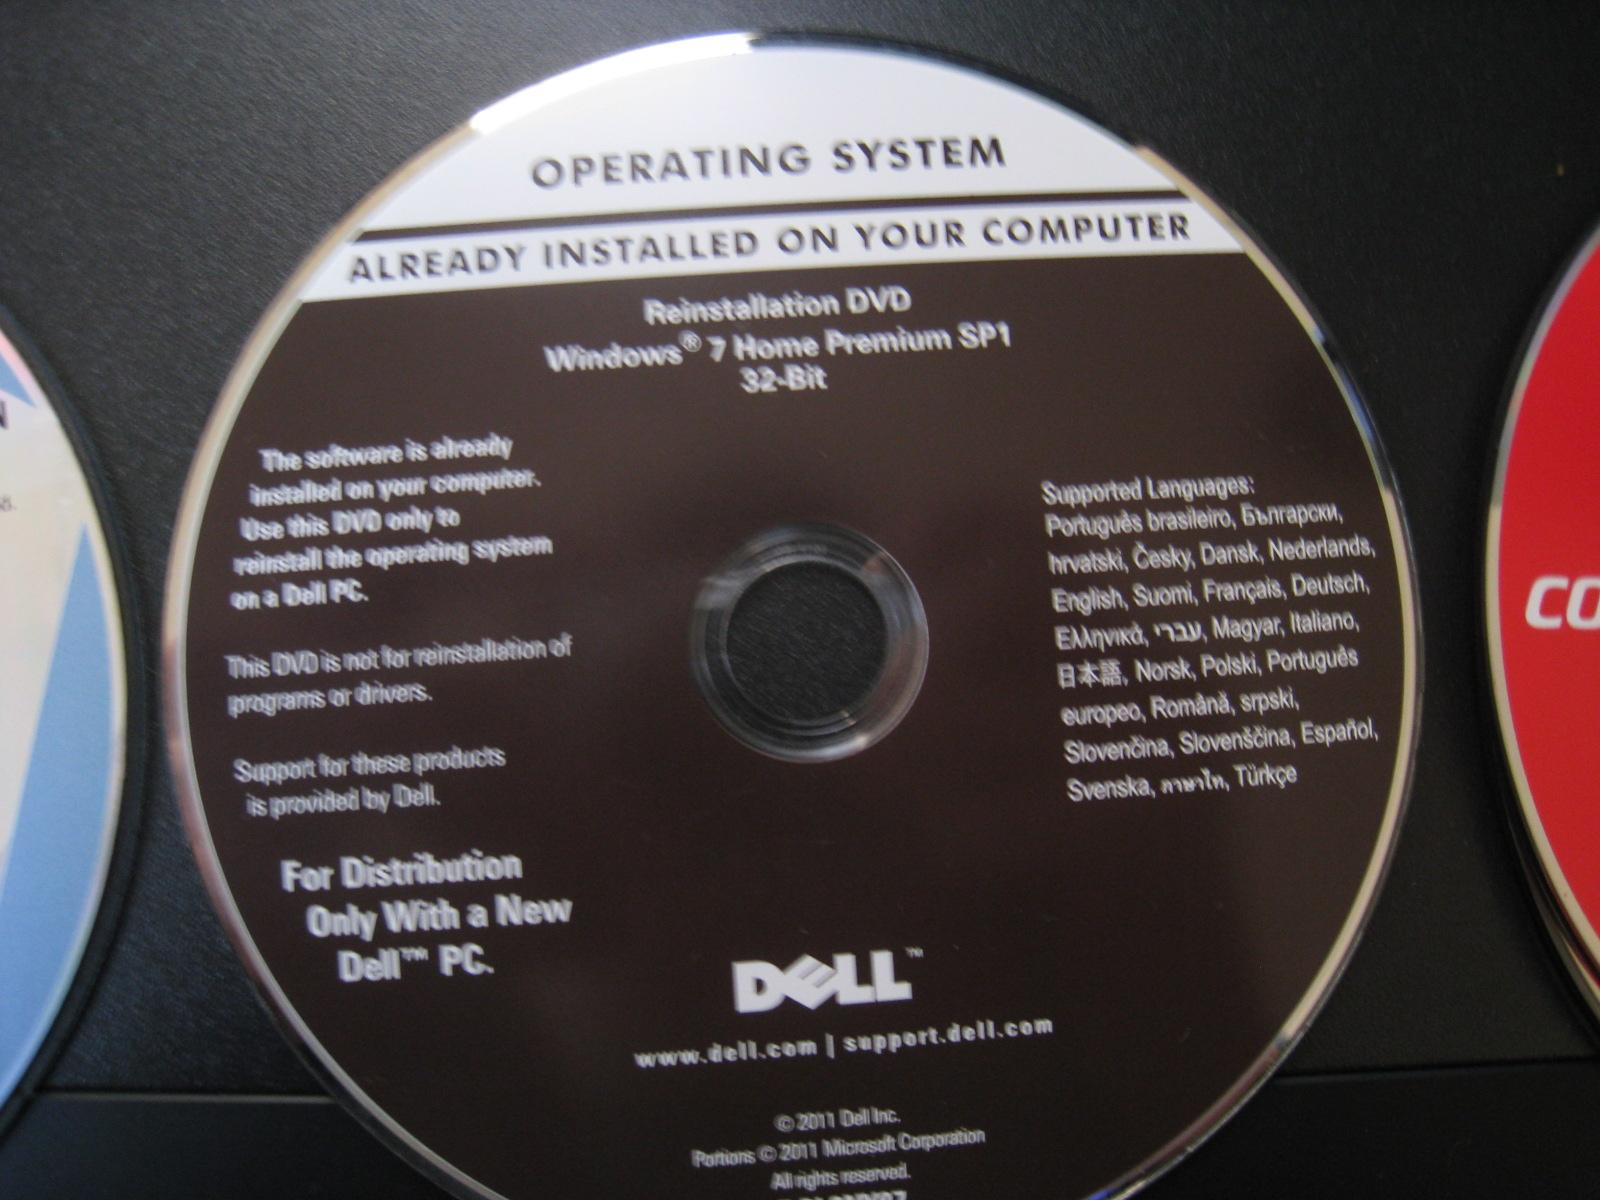 Hp compaq windows 7 ultimate x64 oem iso overview | free pc.